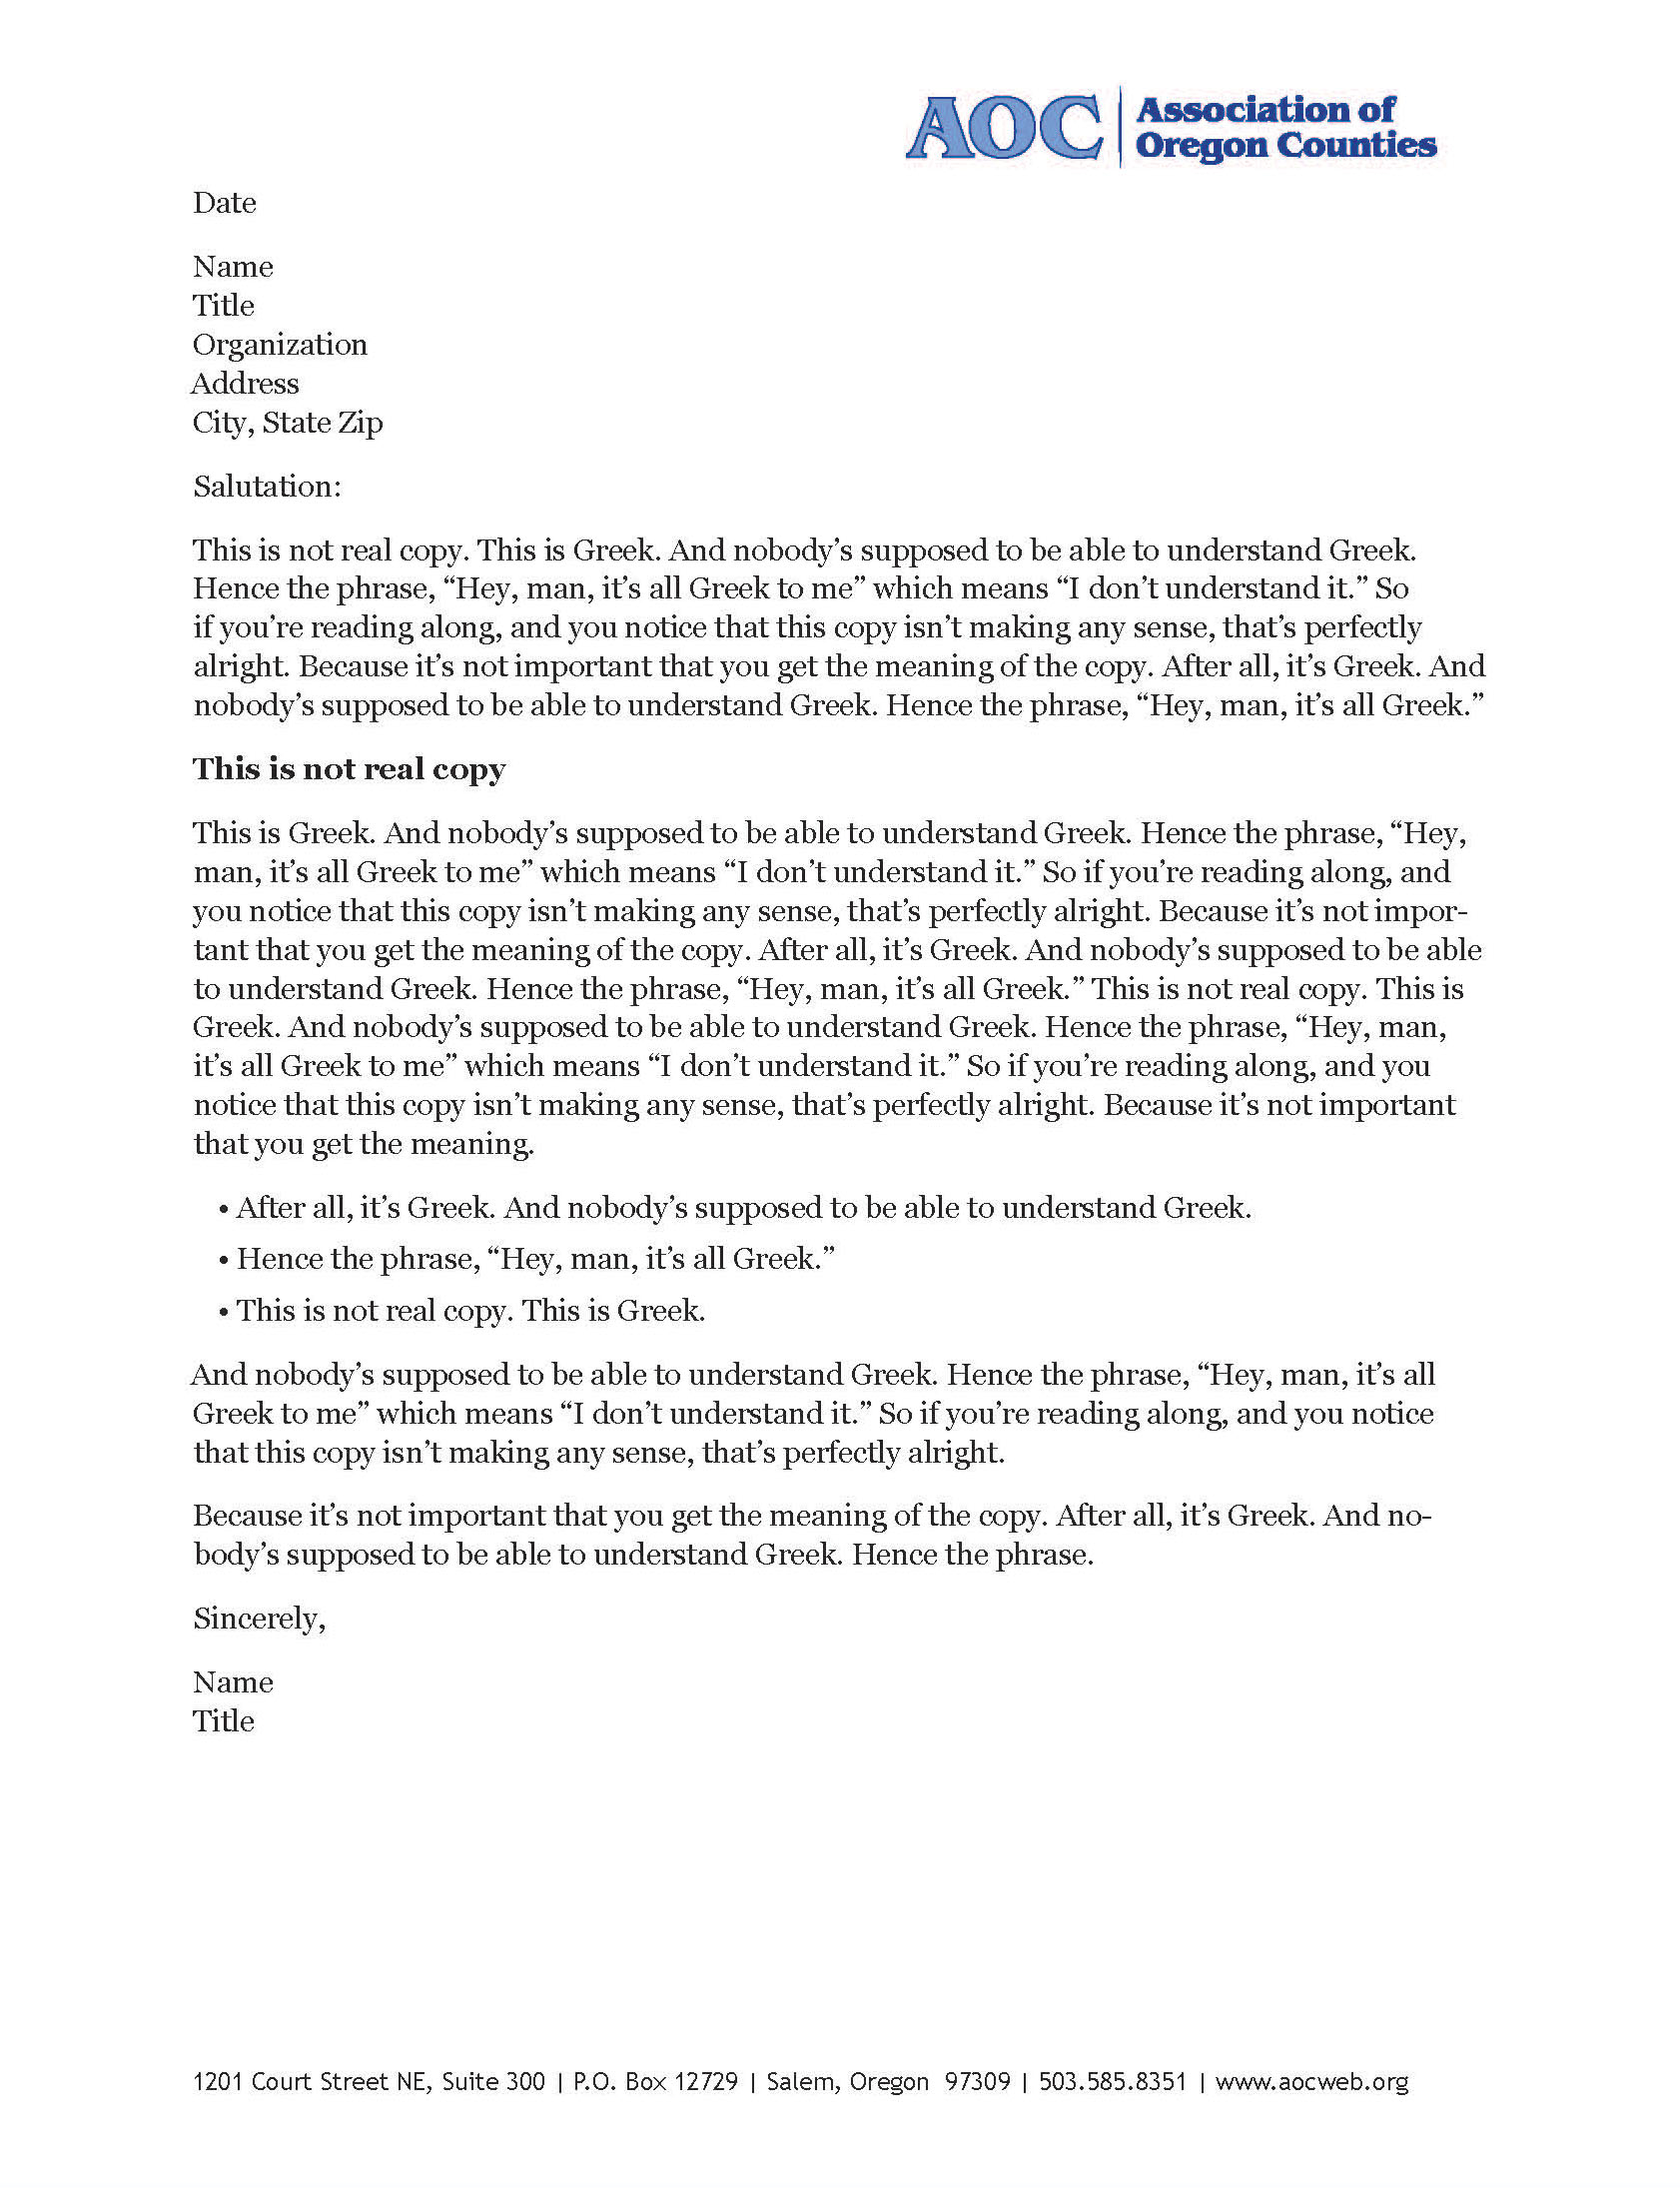 Letterhead templates how to in word optimize my brand first whats included in the letterhead template spiritdancerdesigns Image collections